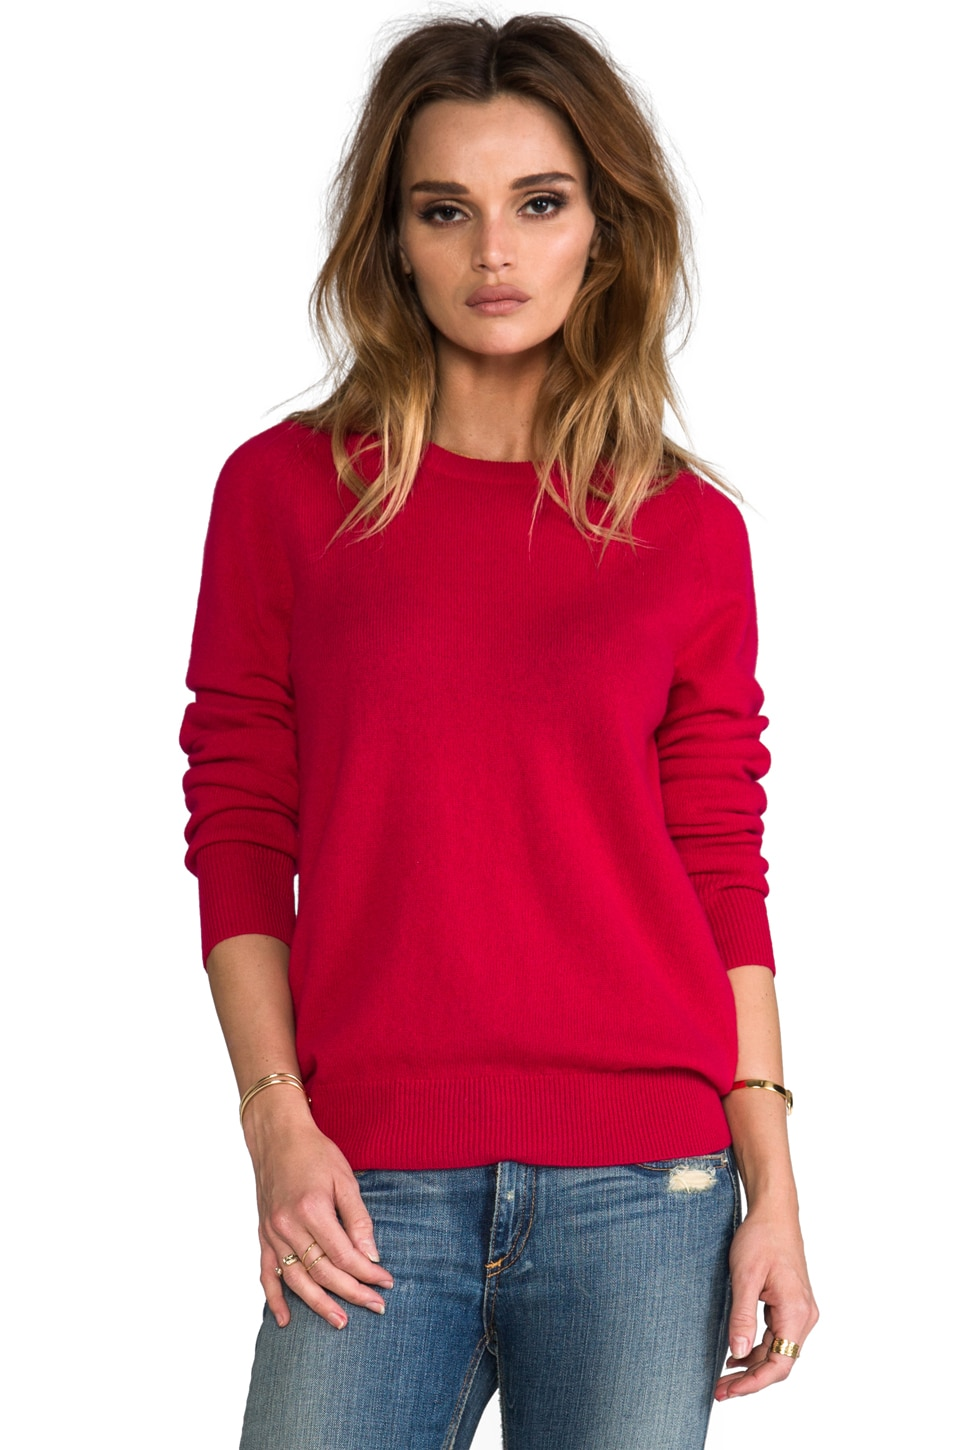 Equipment Sloan Crew Neck Sweater in Persian Red